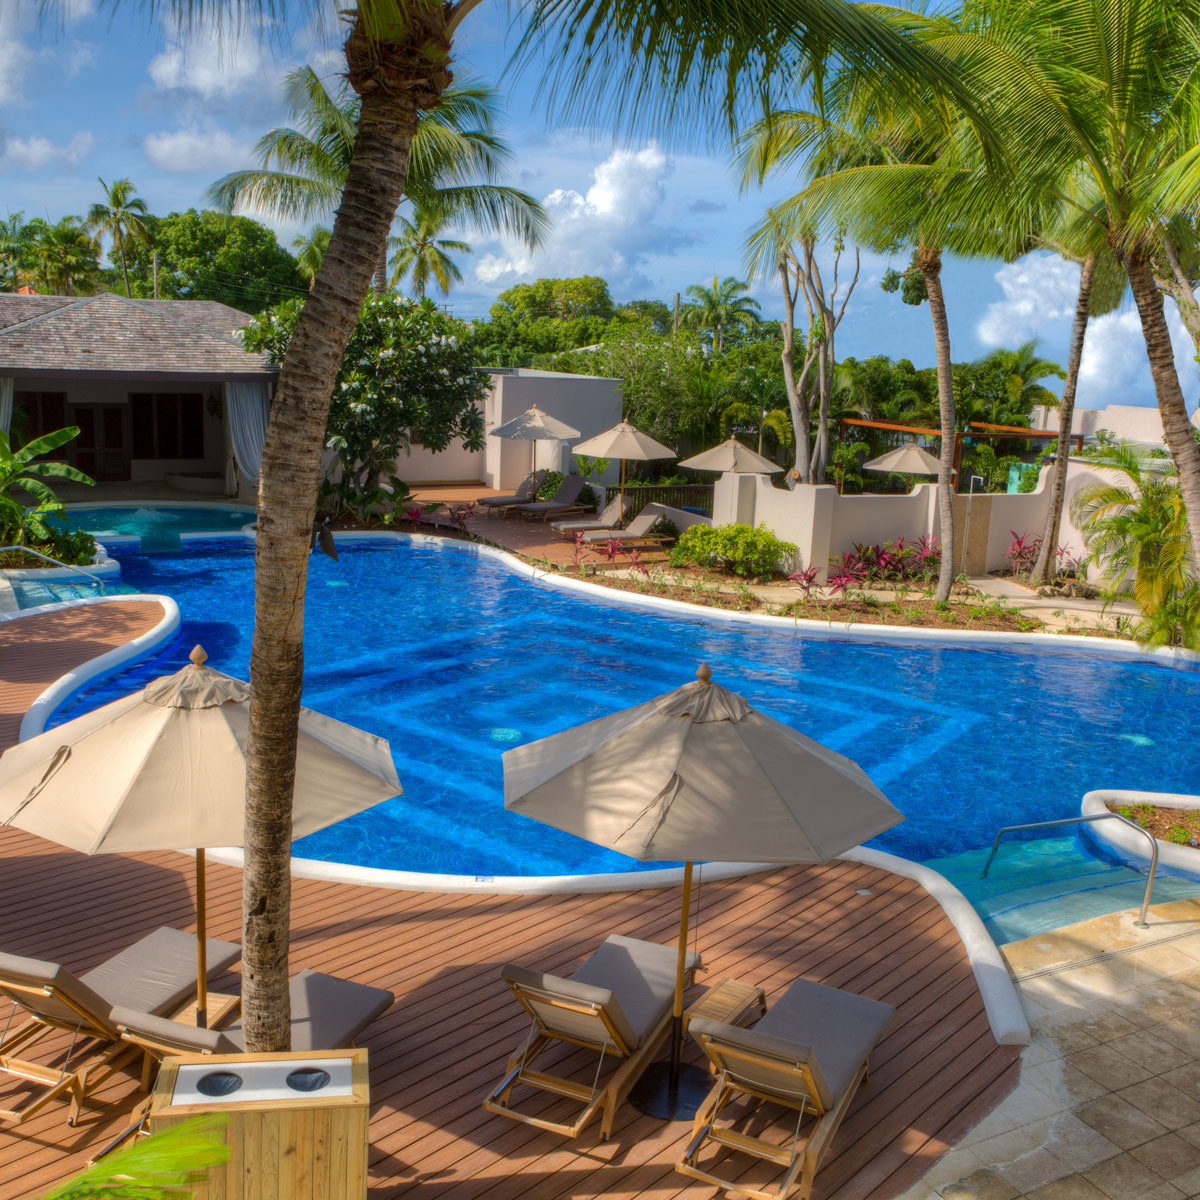 Waves Hotel & Spa, Barbados: Spa treatments and snorkeling